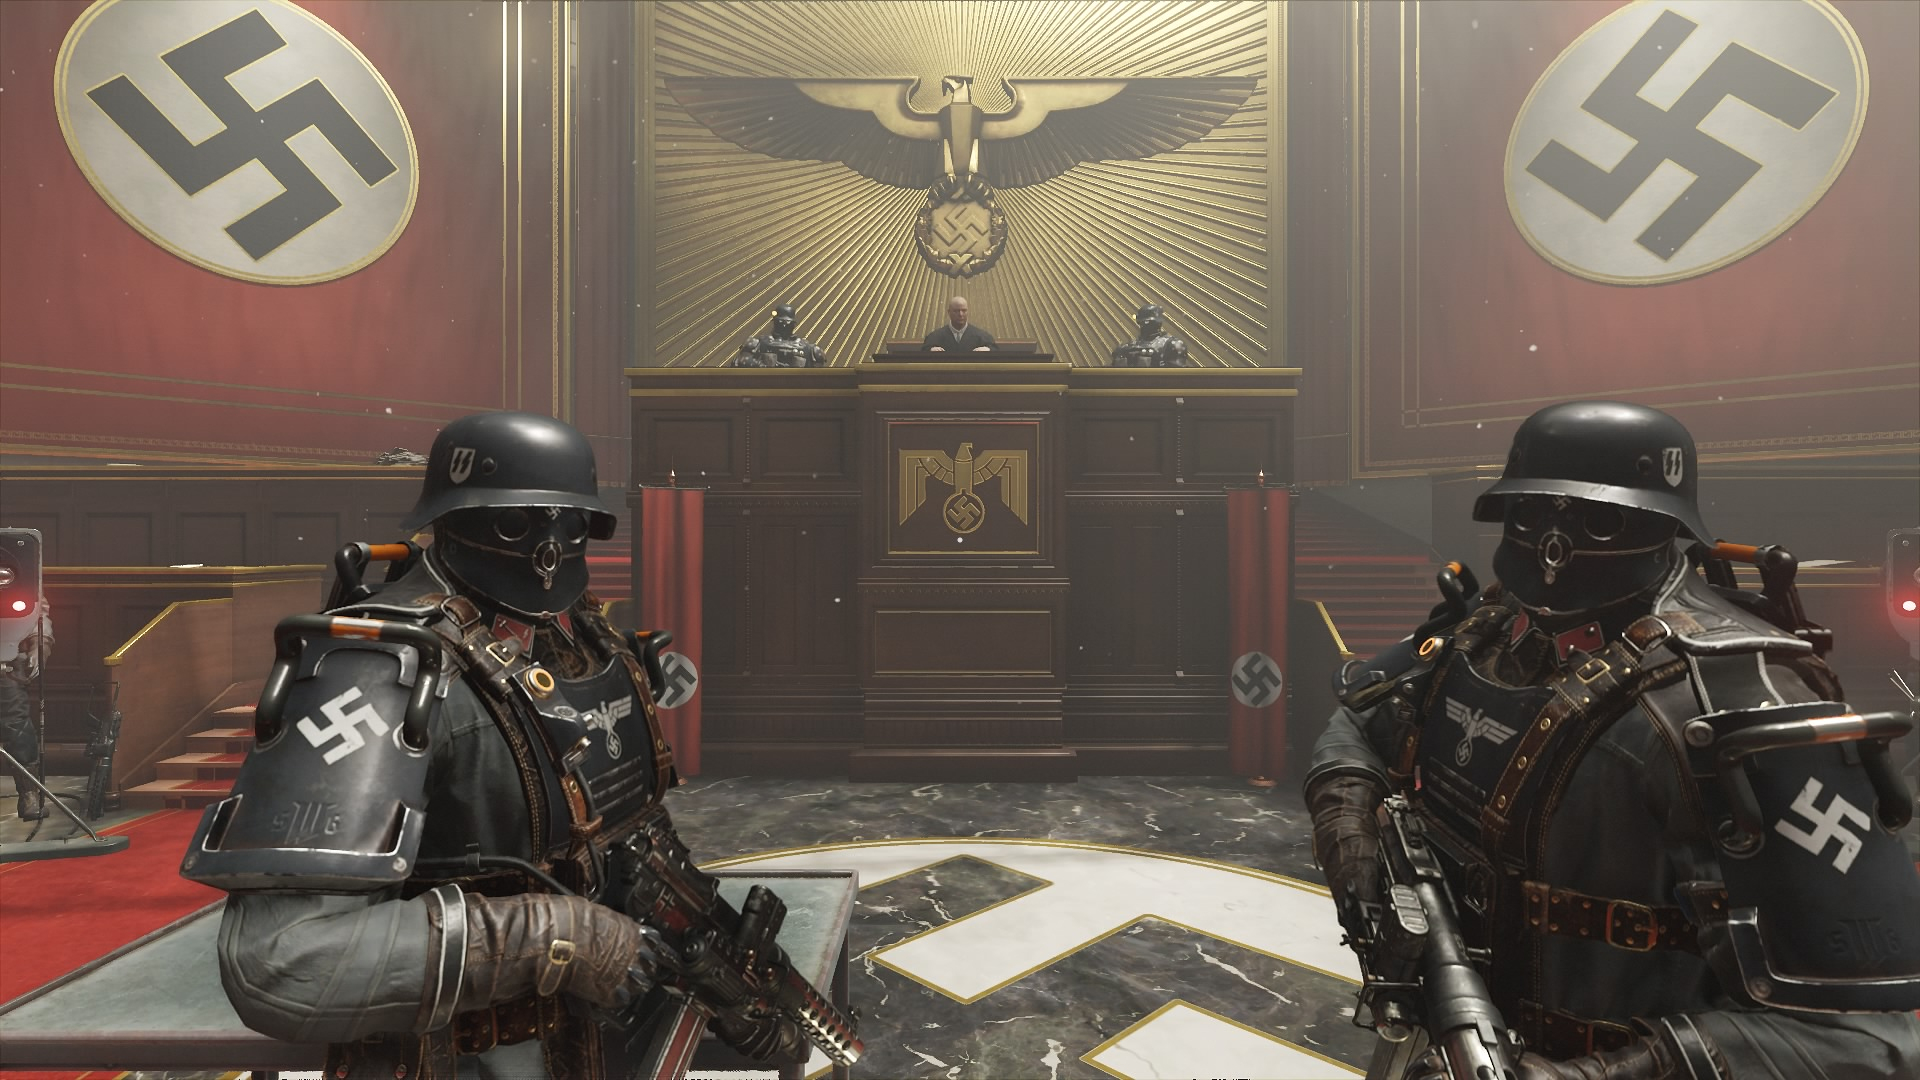 Test : Wolfenstein Ii: The New Colossus : Boches In The Usa pour Jeux De Tir 2